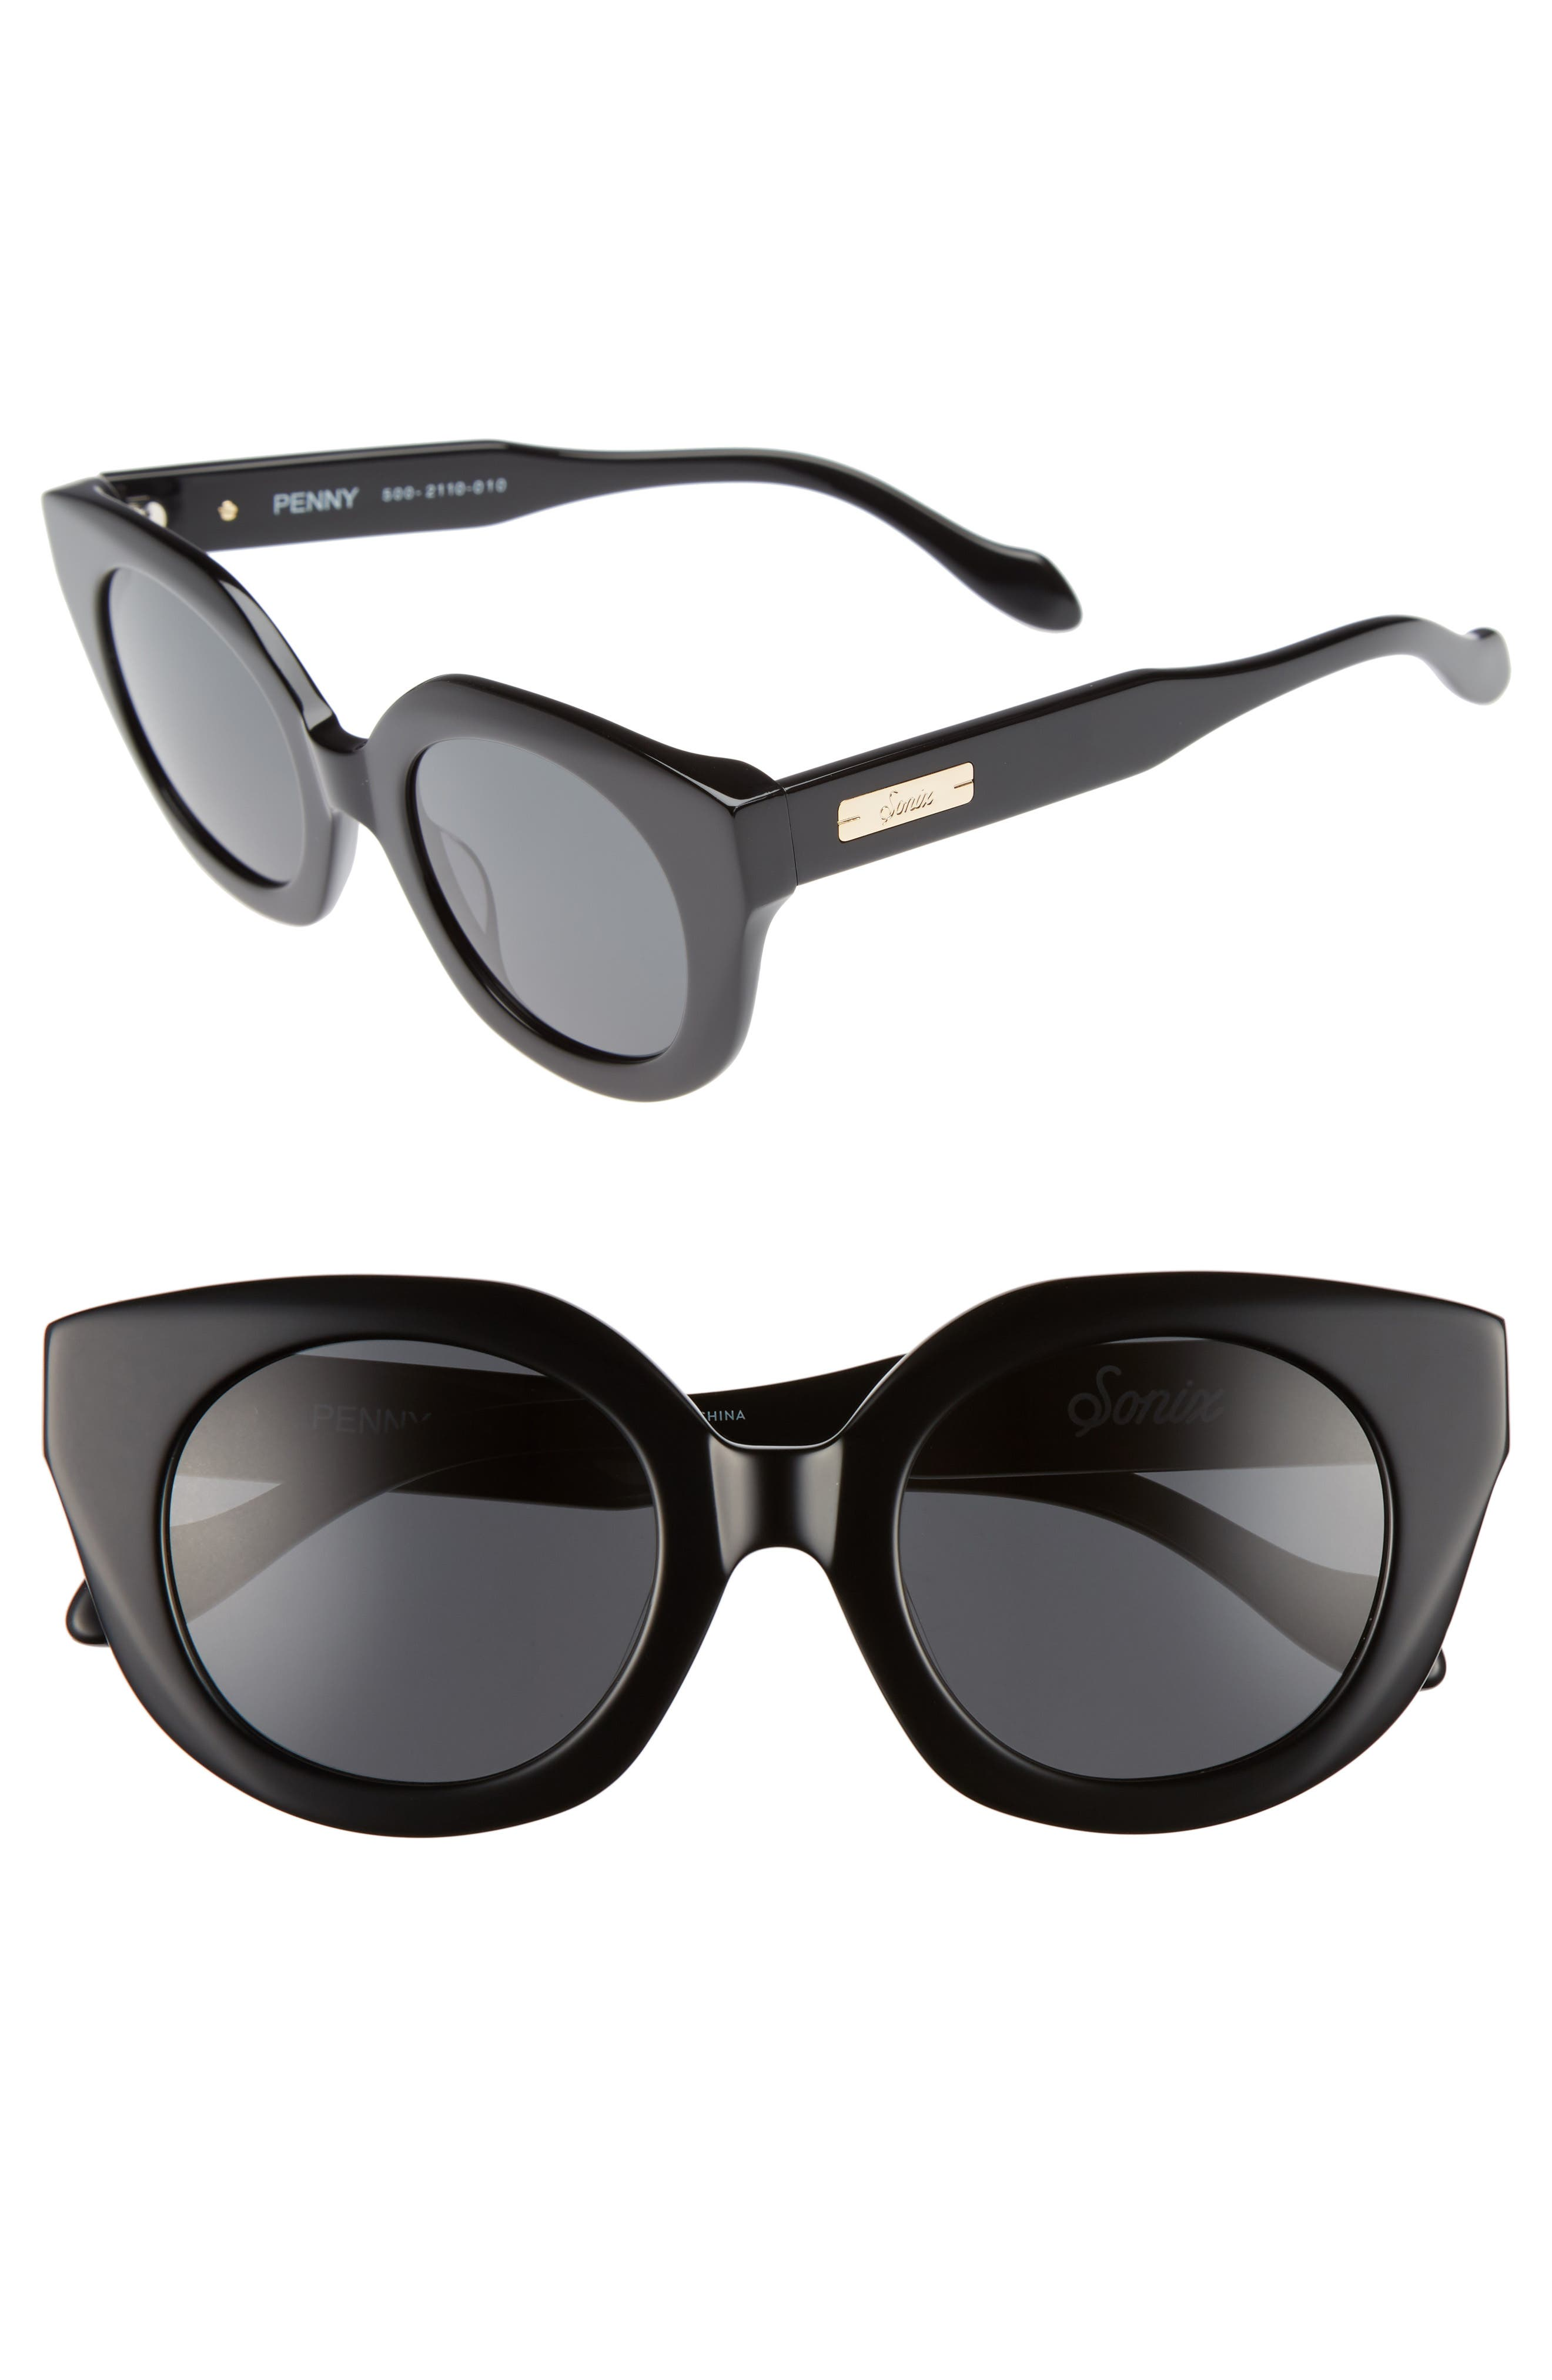 Penny 48mm Cat Eye Sunglasses,                         Main,                         color, Black/ Black Solid